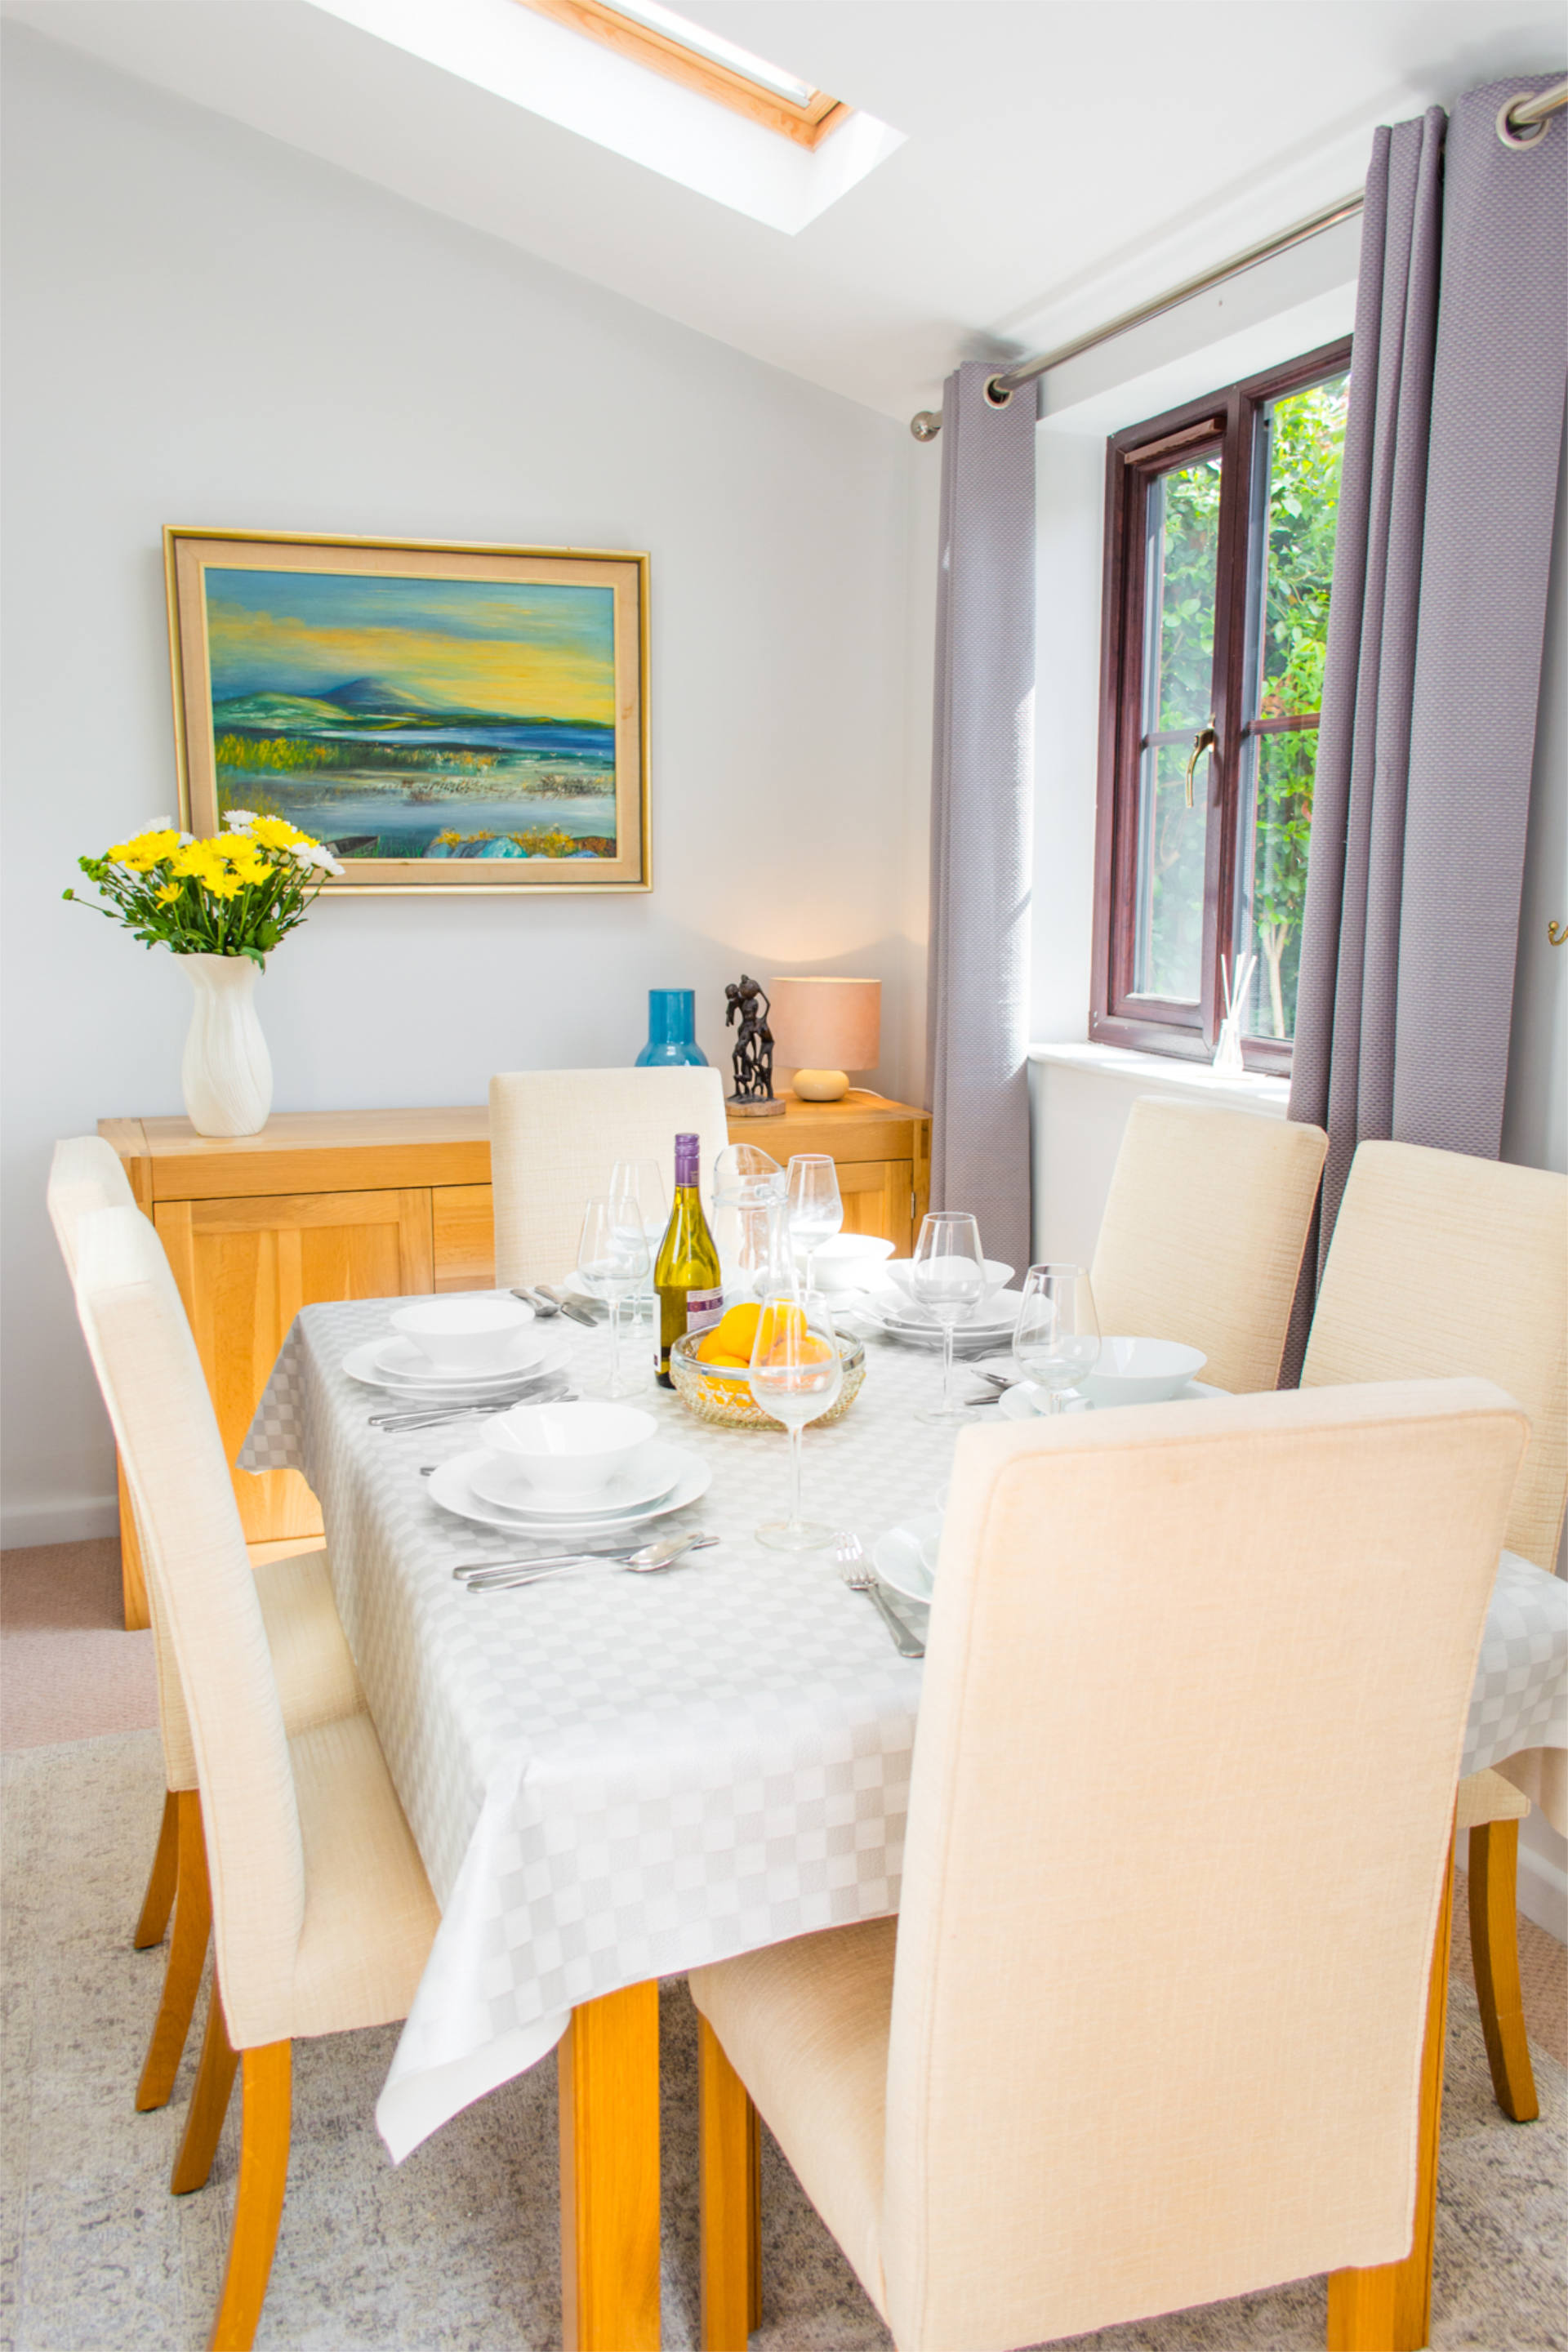 Laid dining table with enough seating for 6 guests.